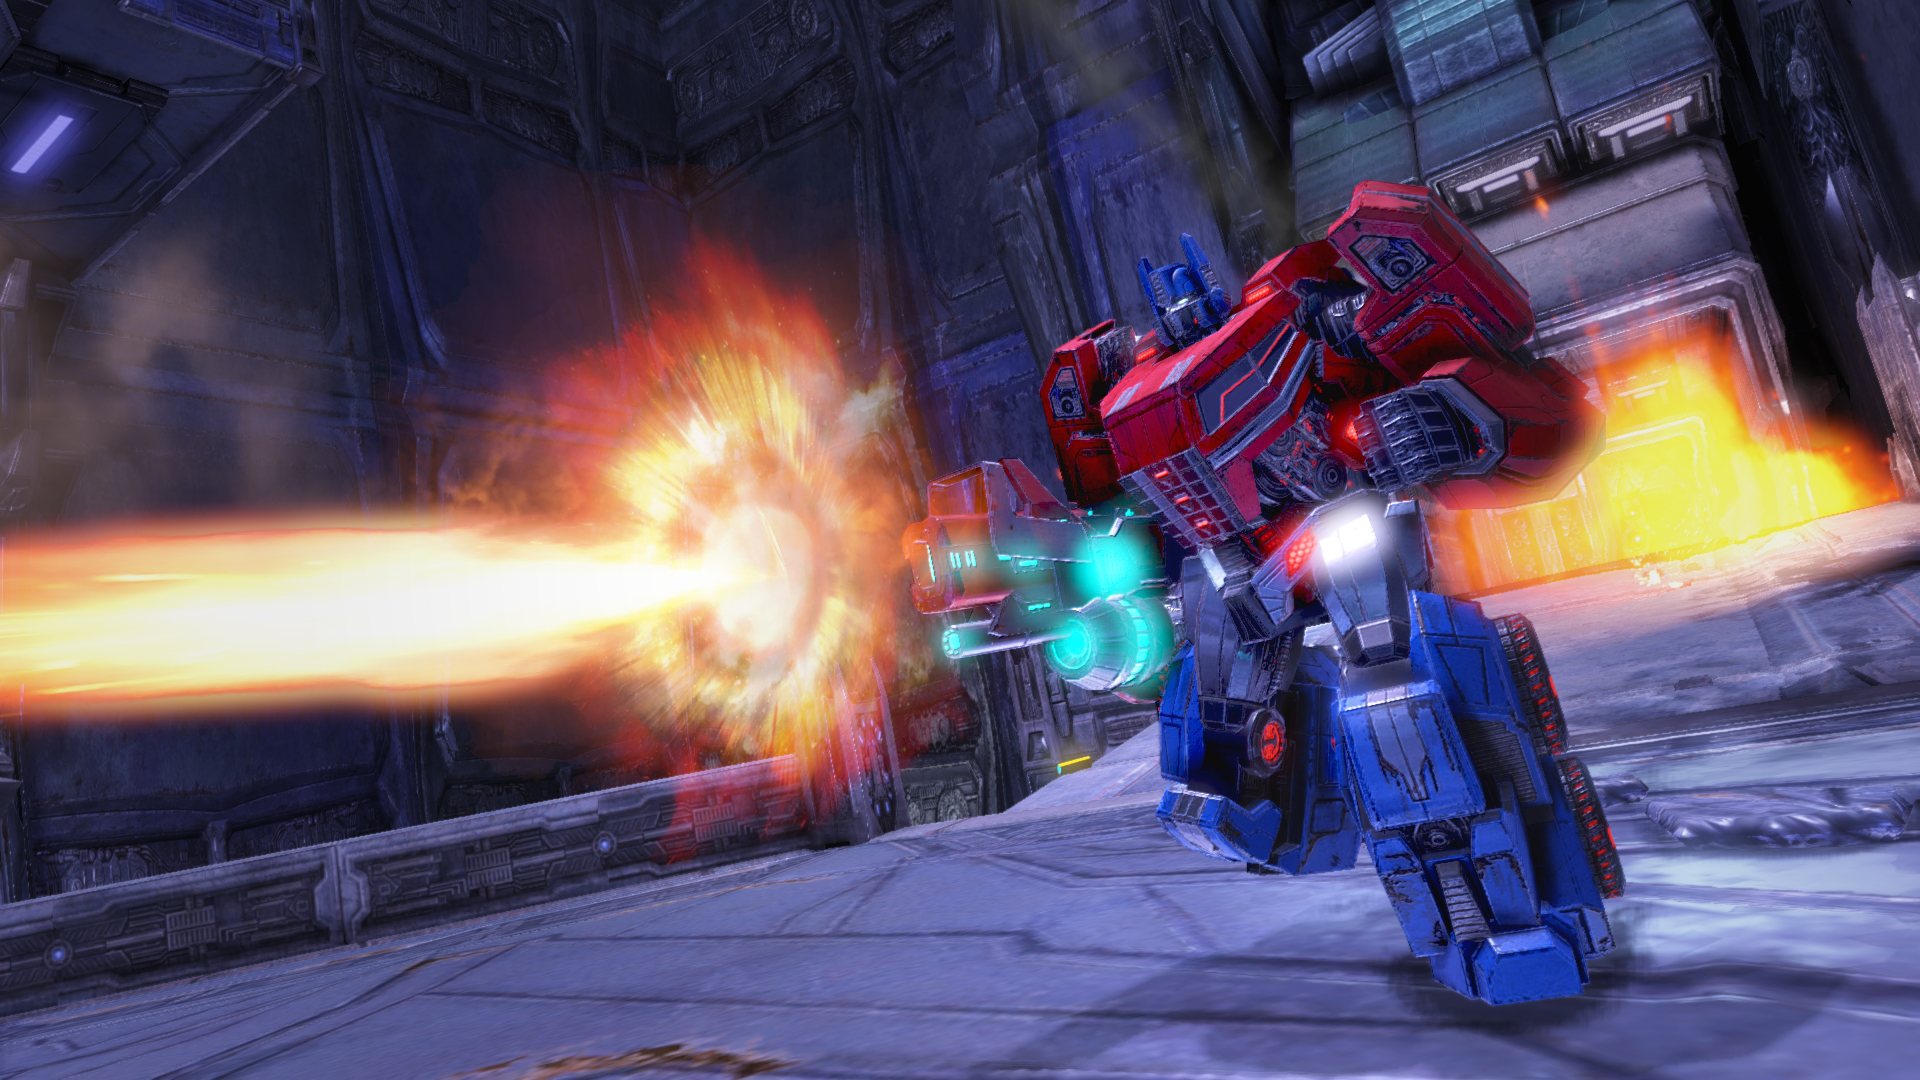 Transformers: Rise of the Dark Spark presenta a Bumblebee